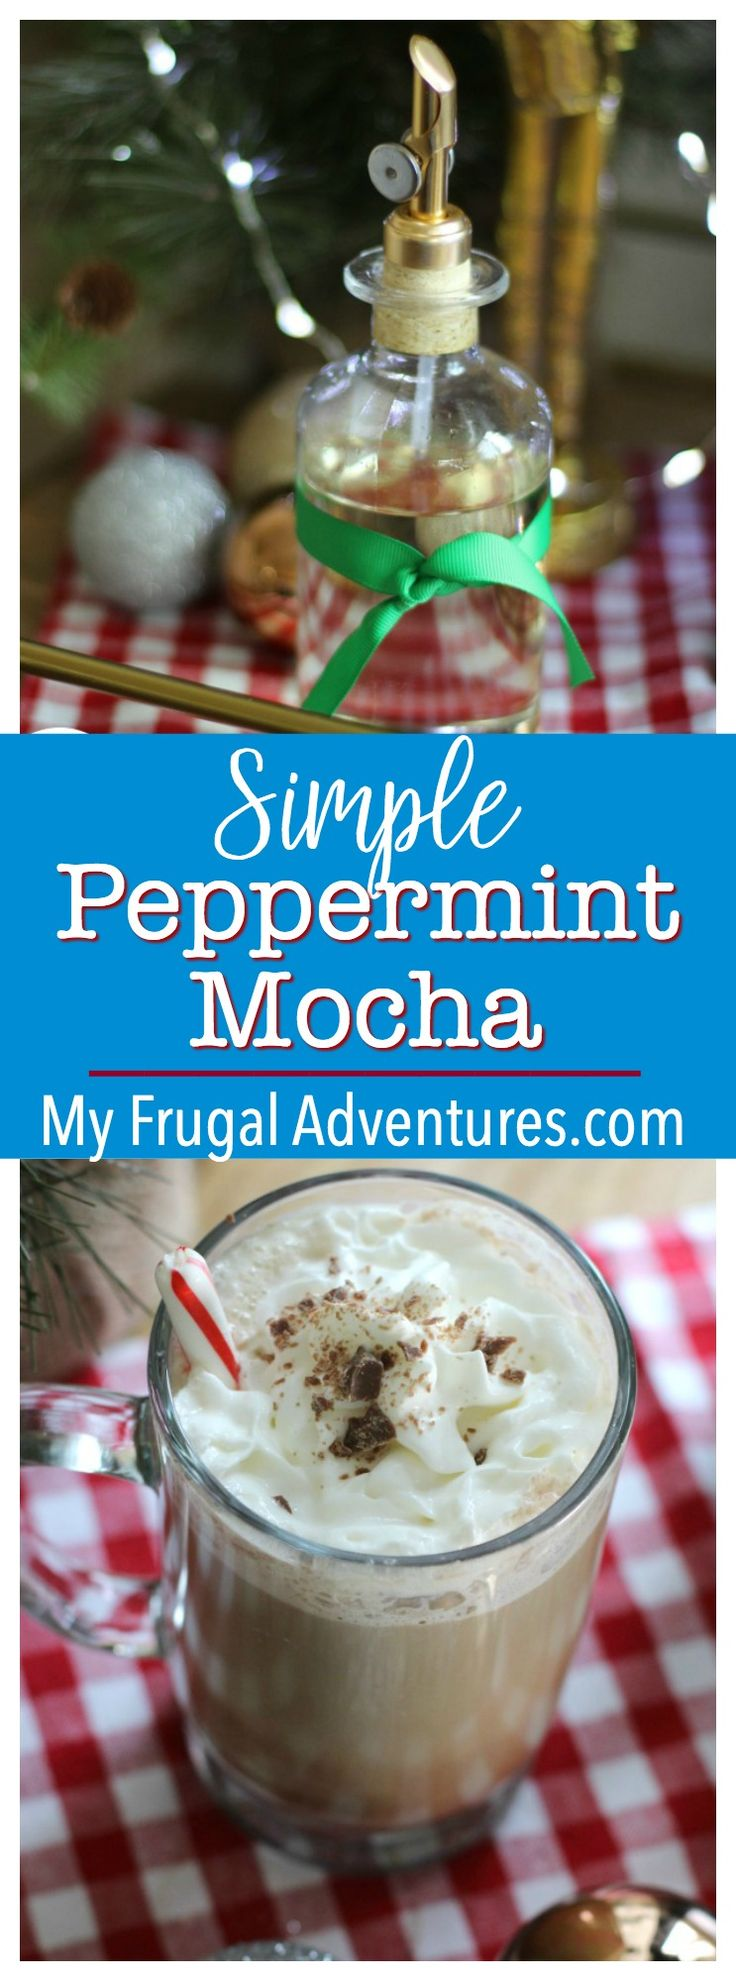 Simple DIY Peppermint Mocha Recipe - keep this peppermint syrup on hand for coffees or hot chocolate!